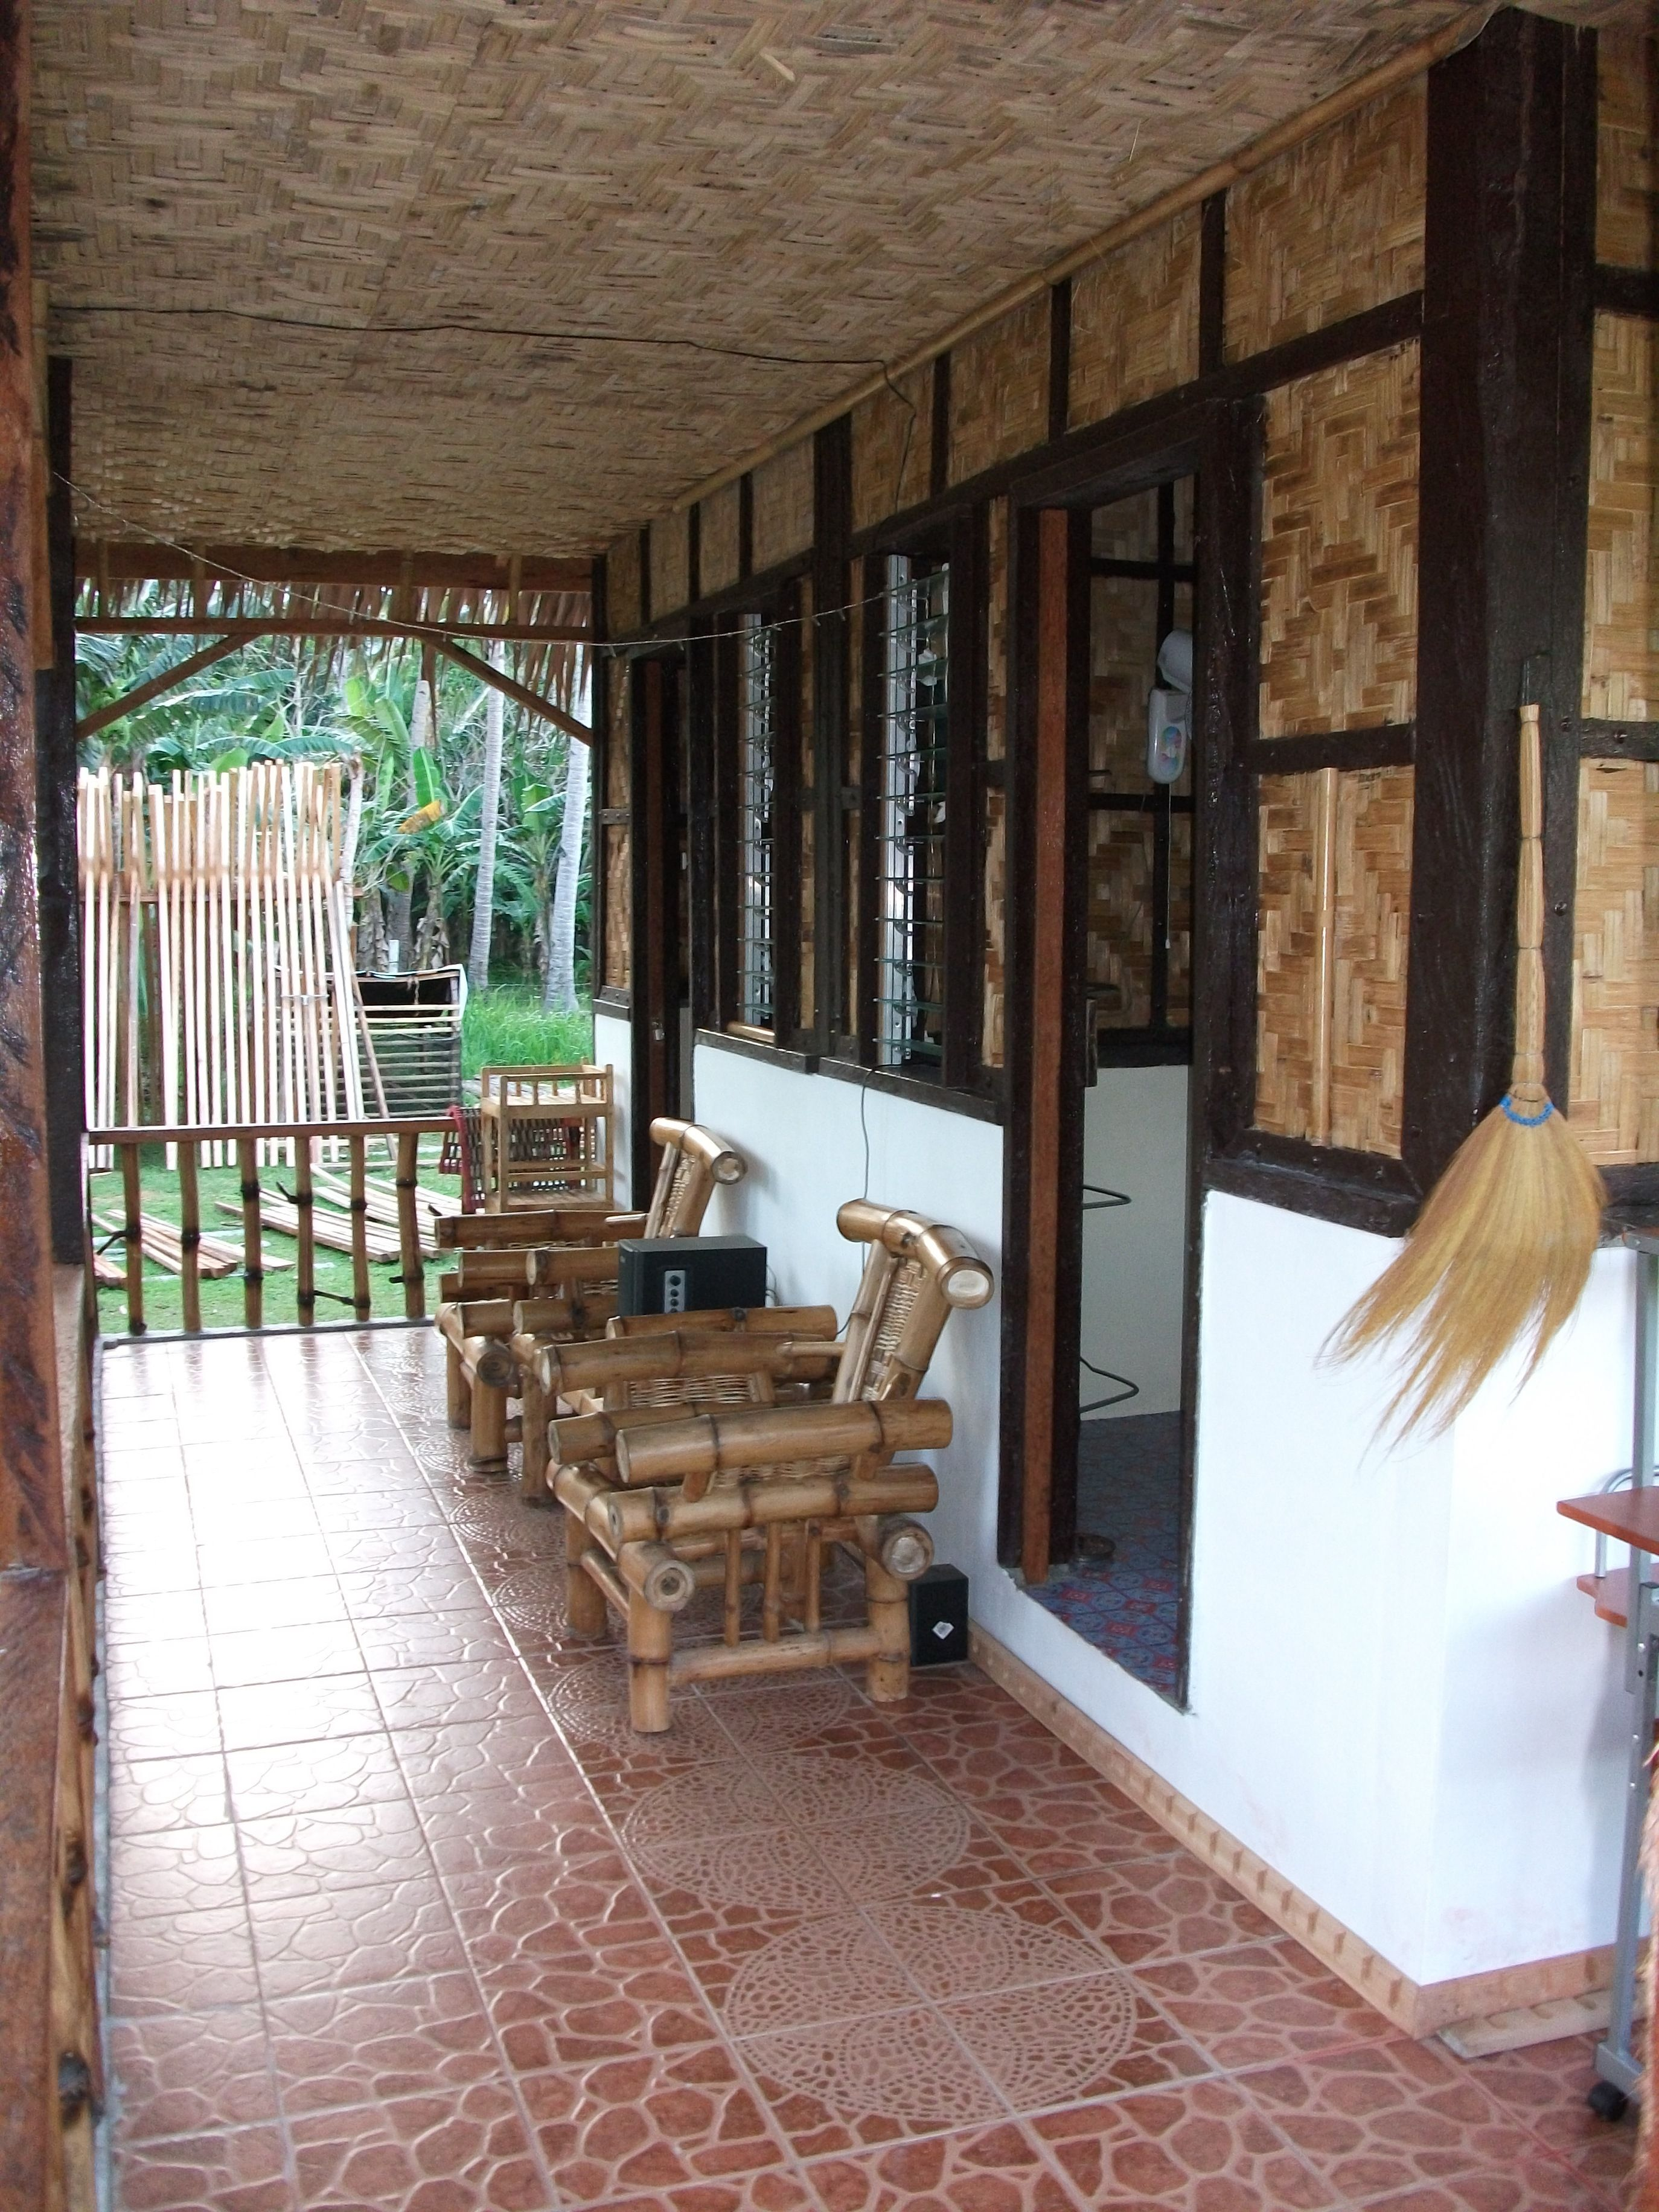 Modern Bahay Kubo Design : modern, bahay, design, Bungalow, Design, Philippines, Bamboo, House, Design,, Wooden, Small